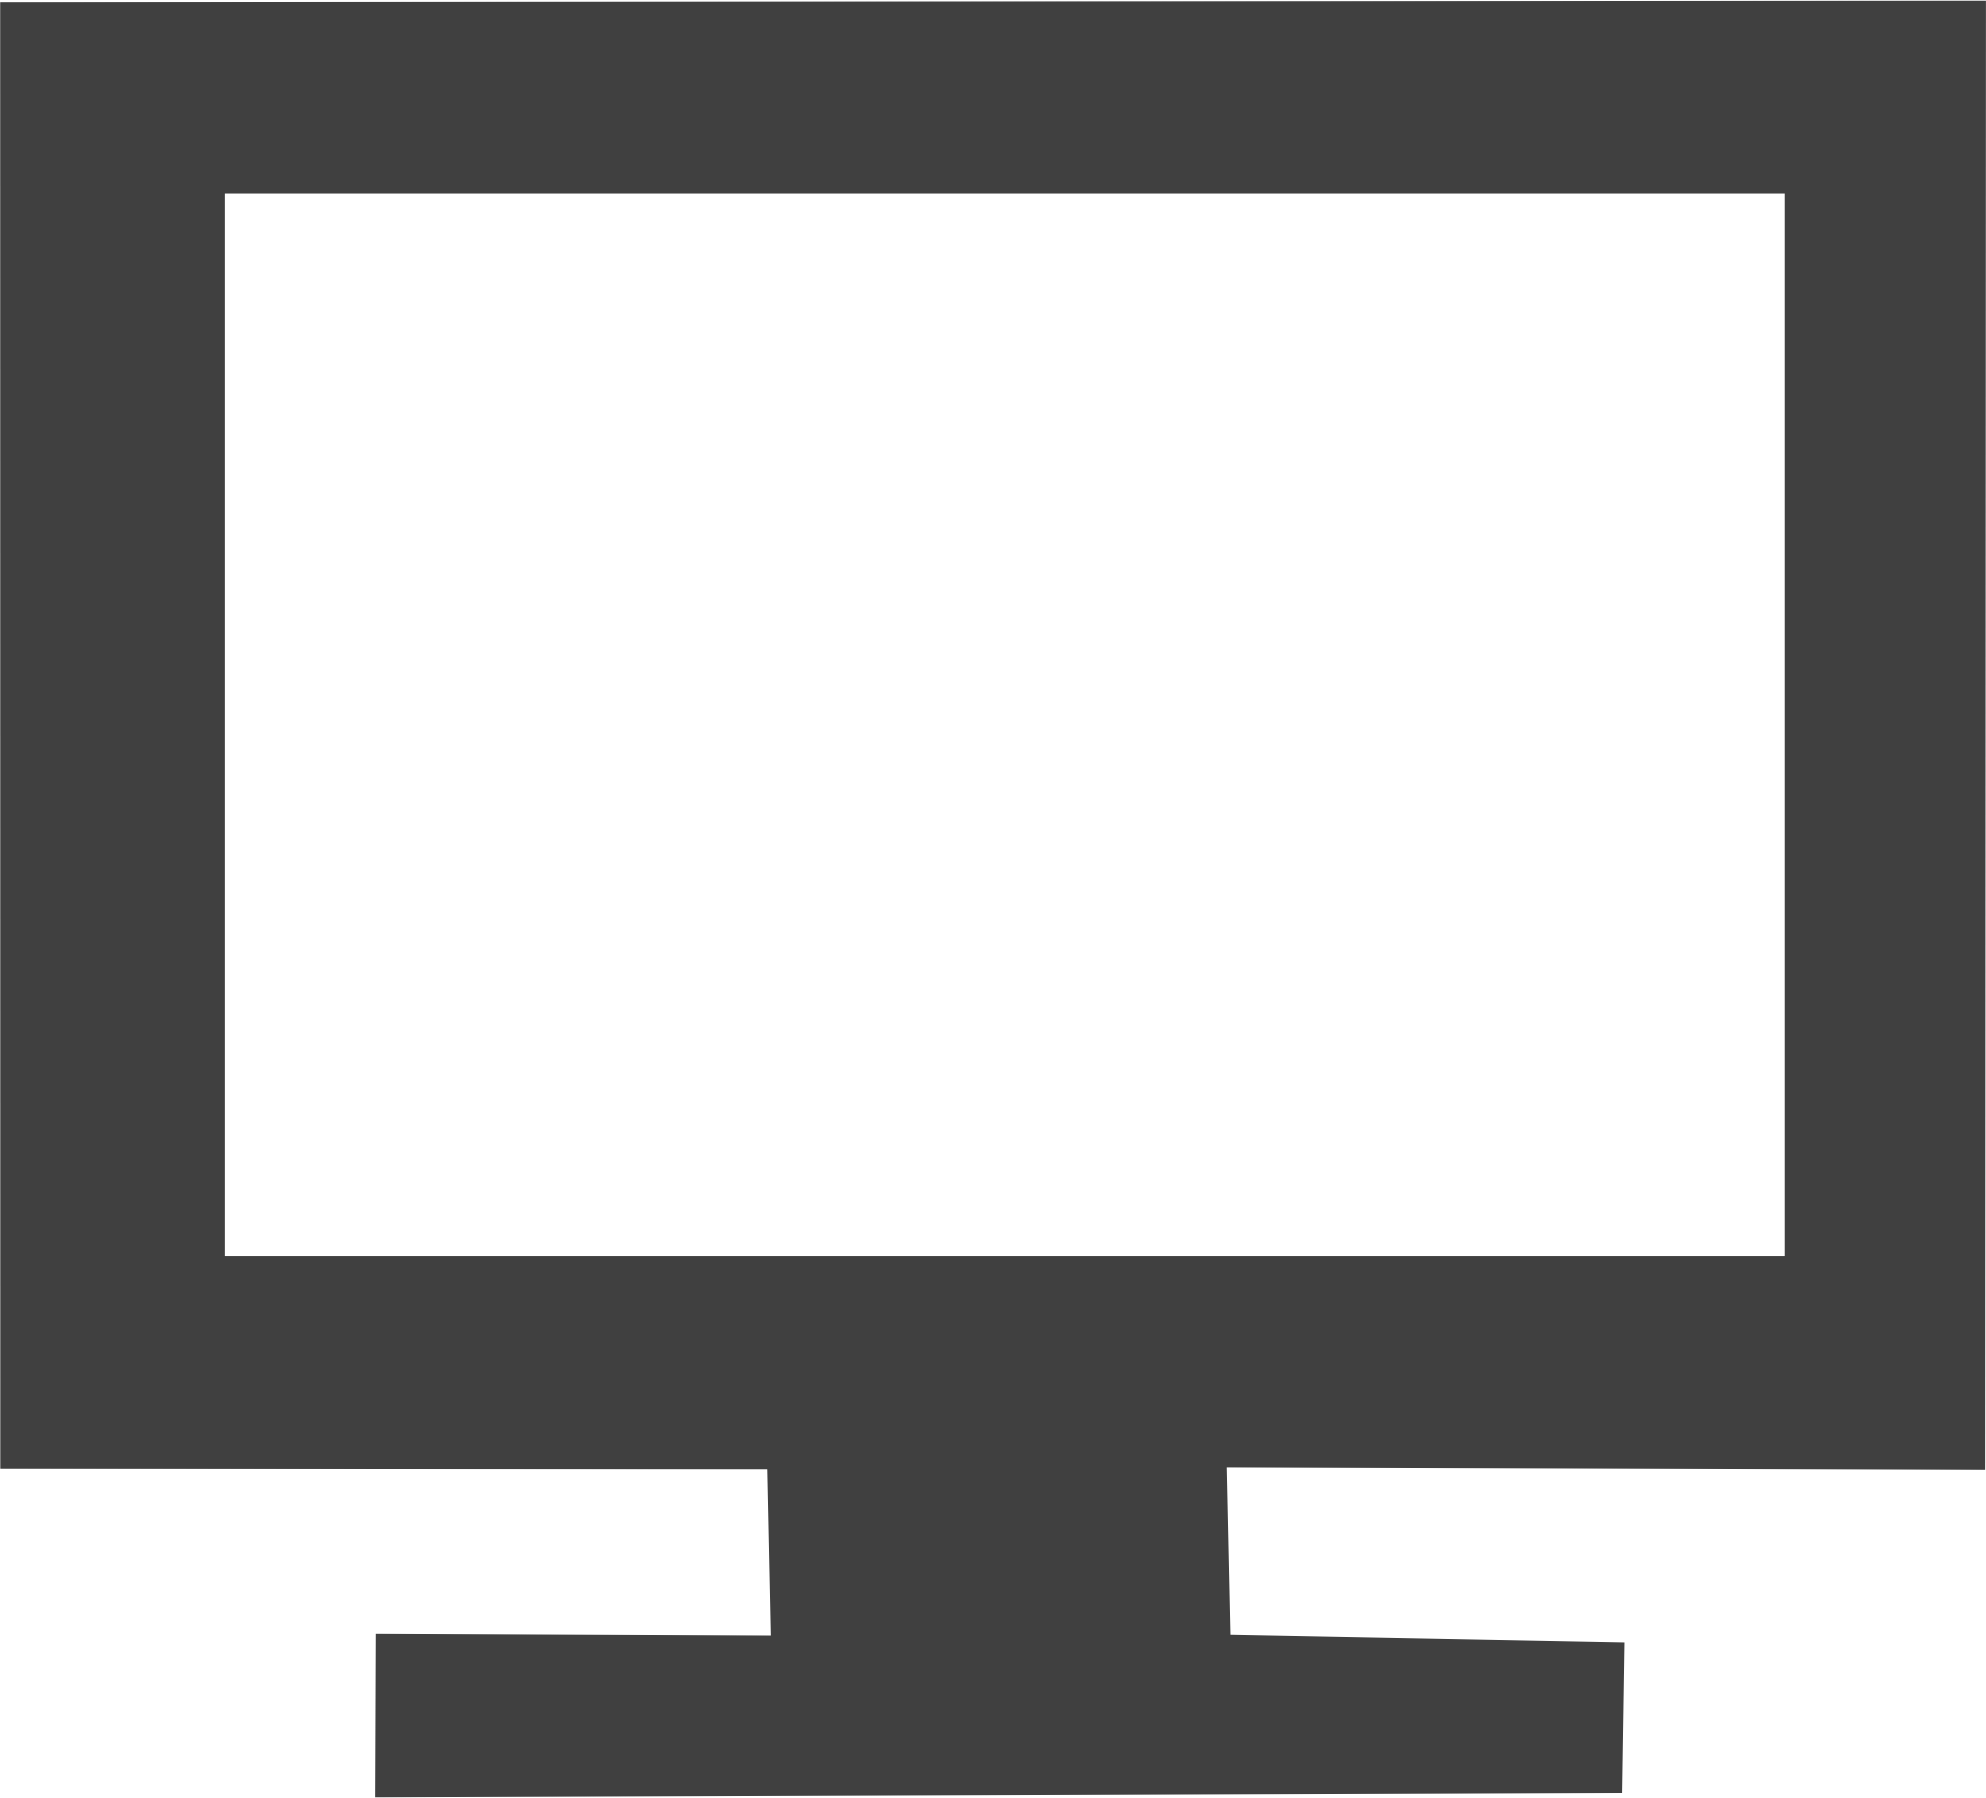 Square clipart television. Big image png